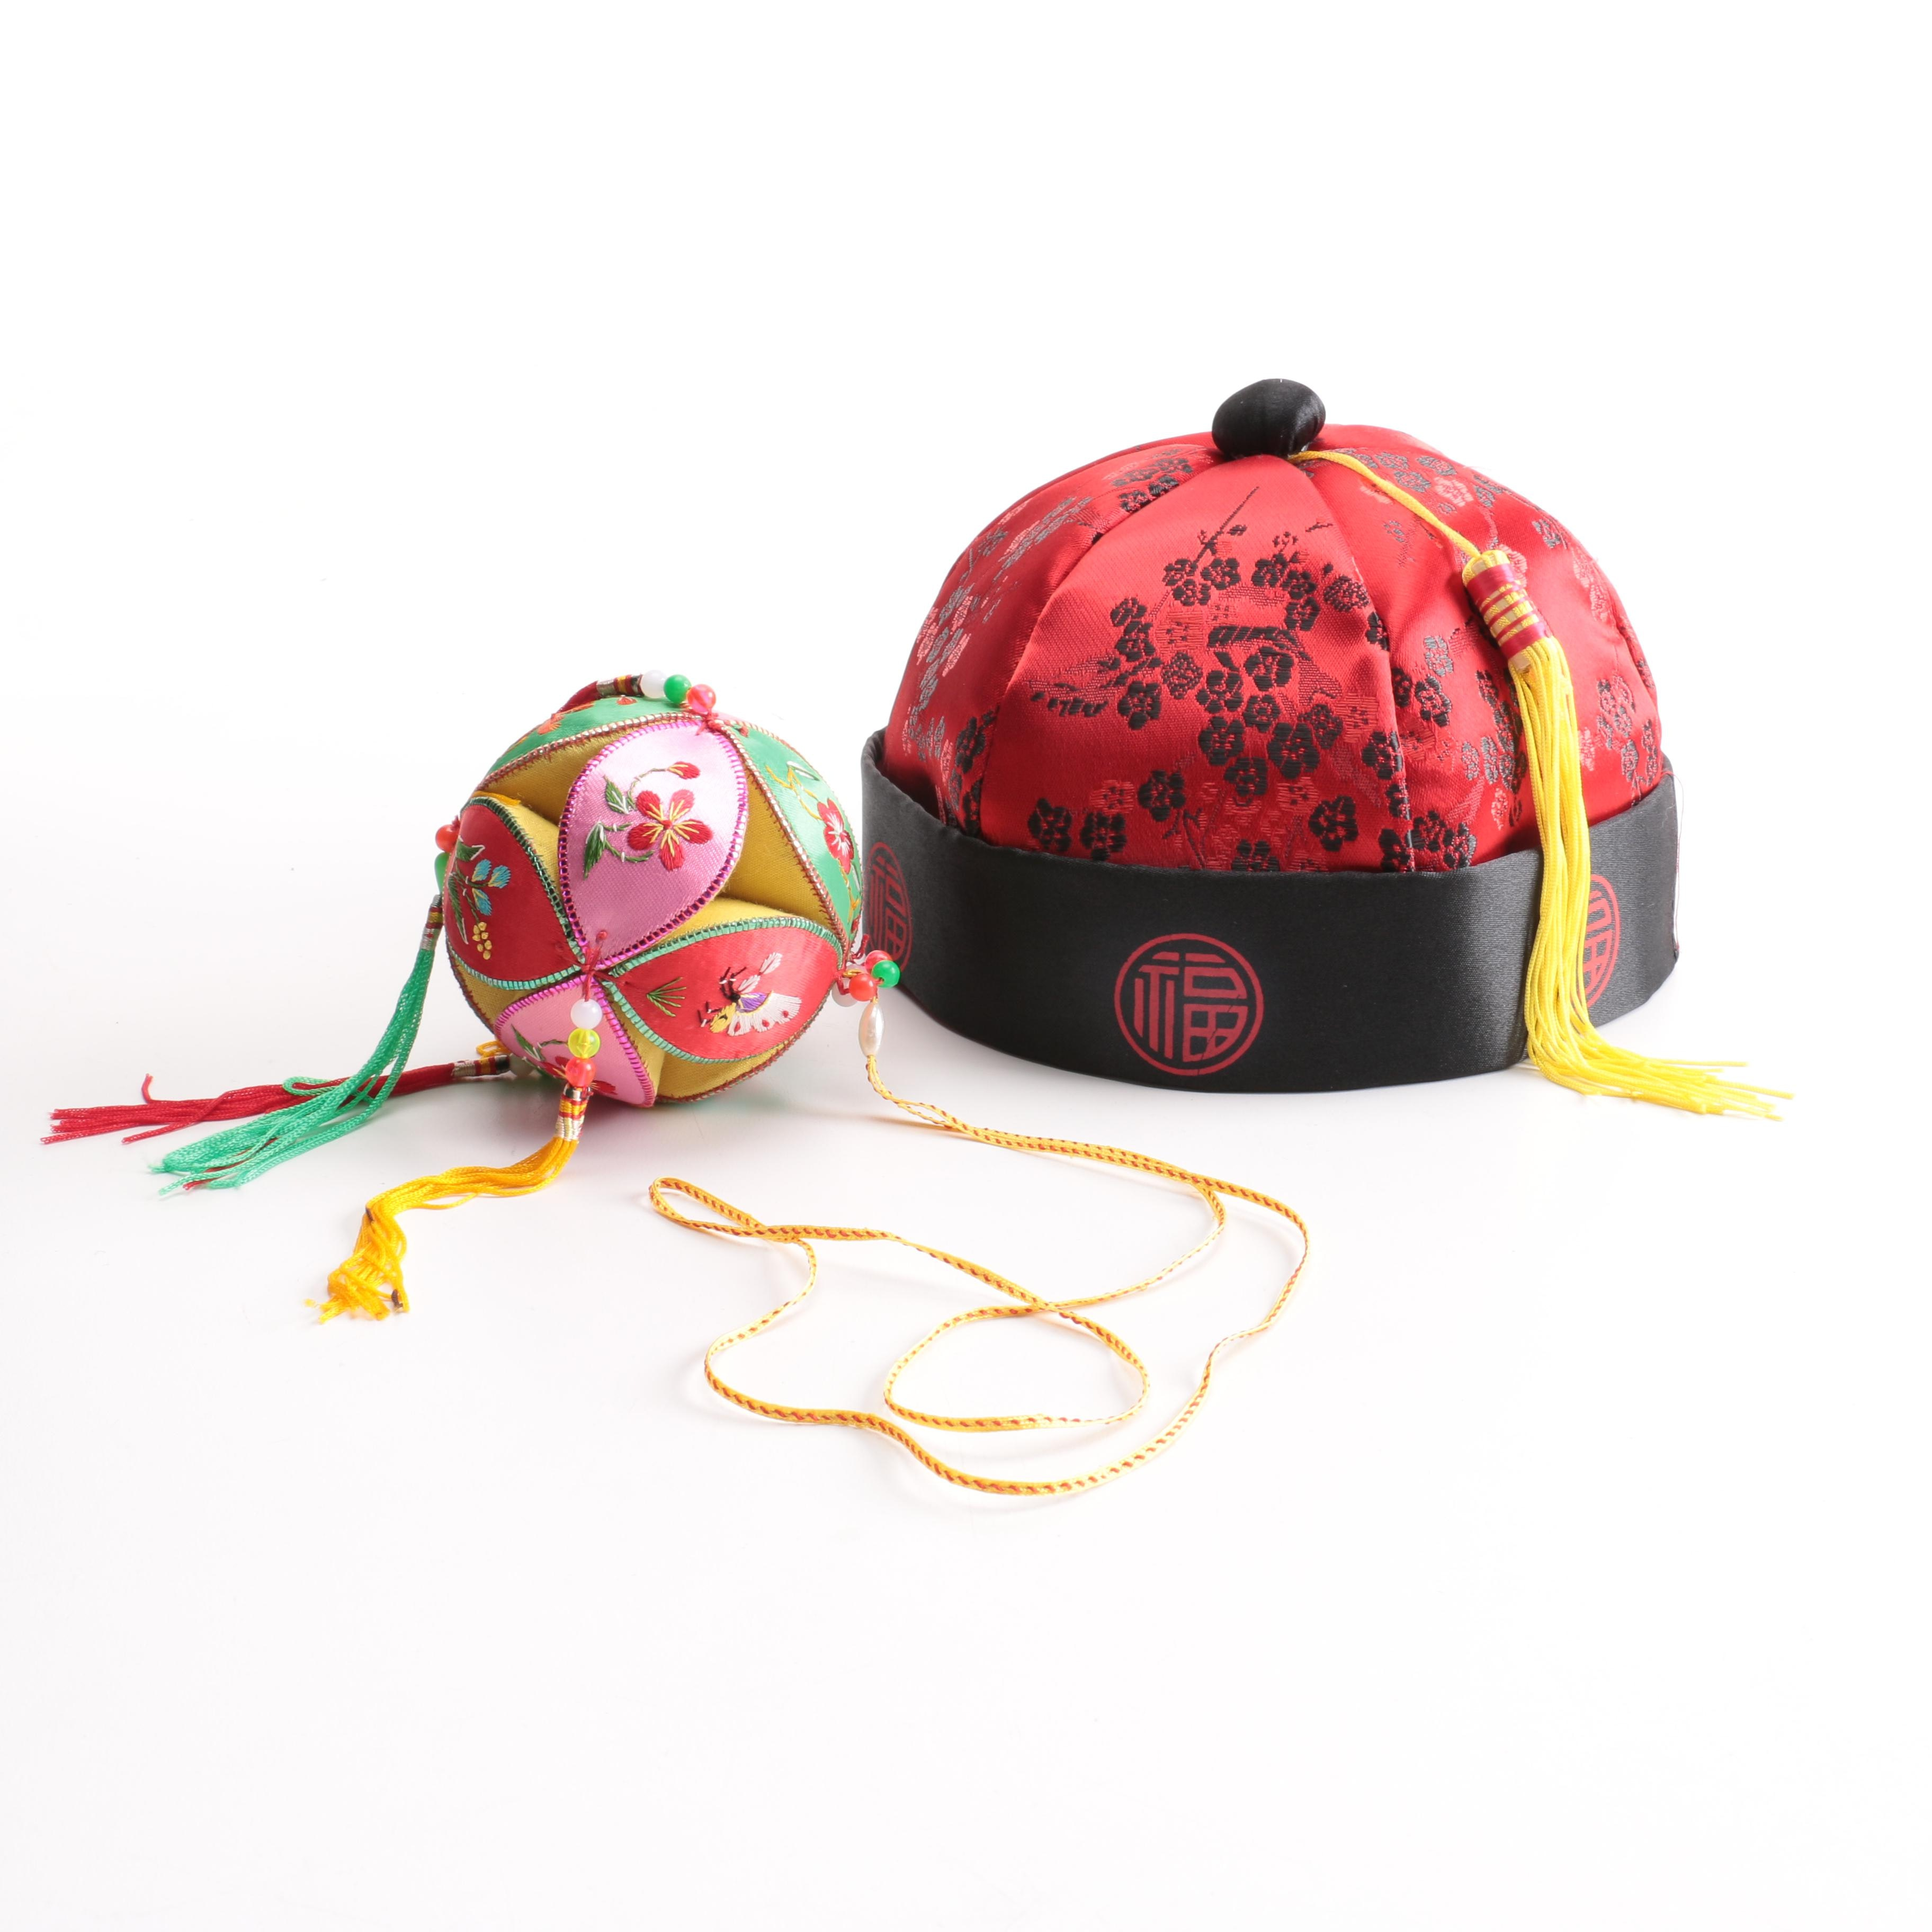 Amscan Chinese Style Souvenir Hat and Decorative Tassel